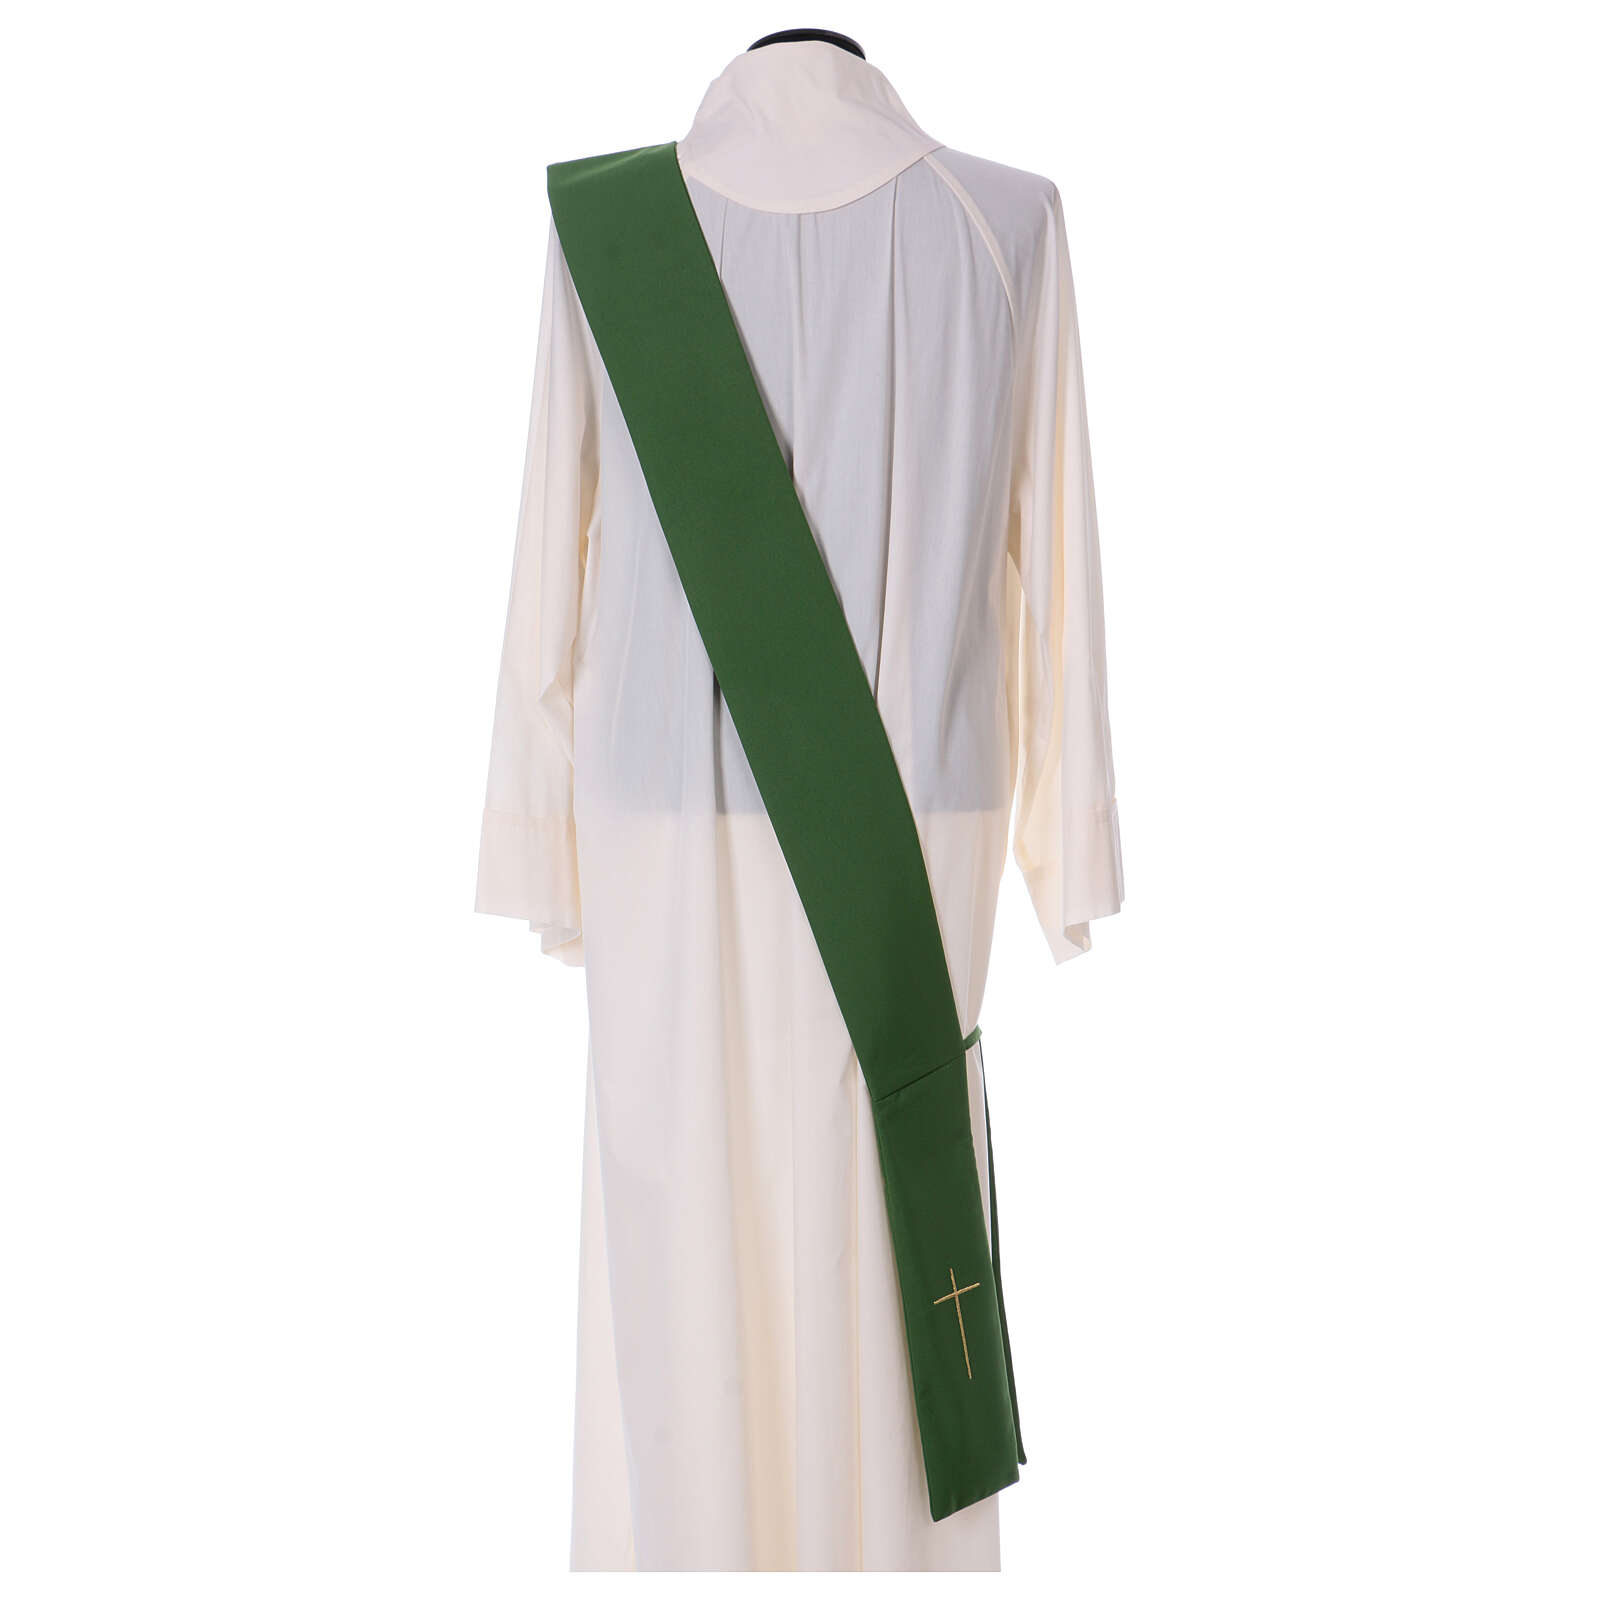 Dalmatic with star cross 100% polyester 4